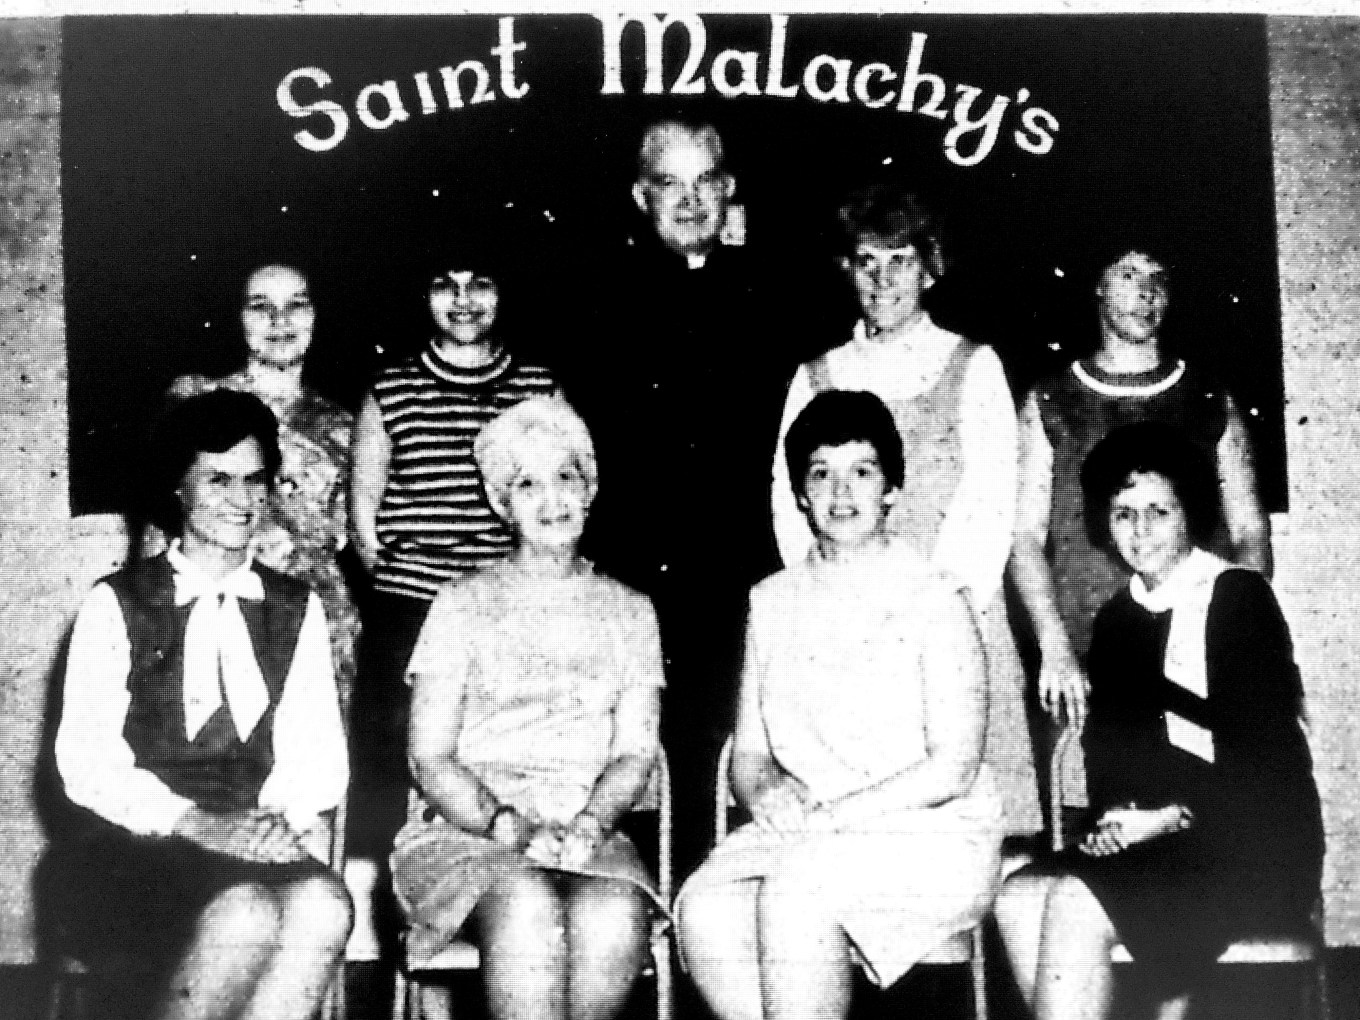 St. Malachy's spring fashion show committee, Burlington MA